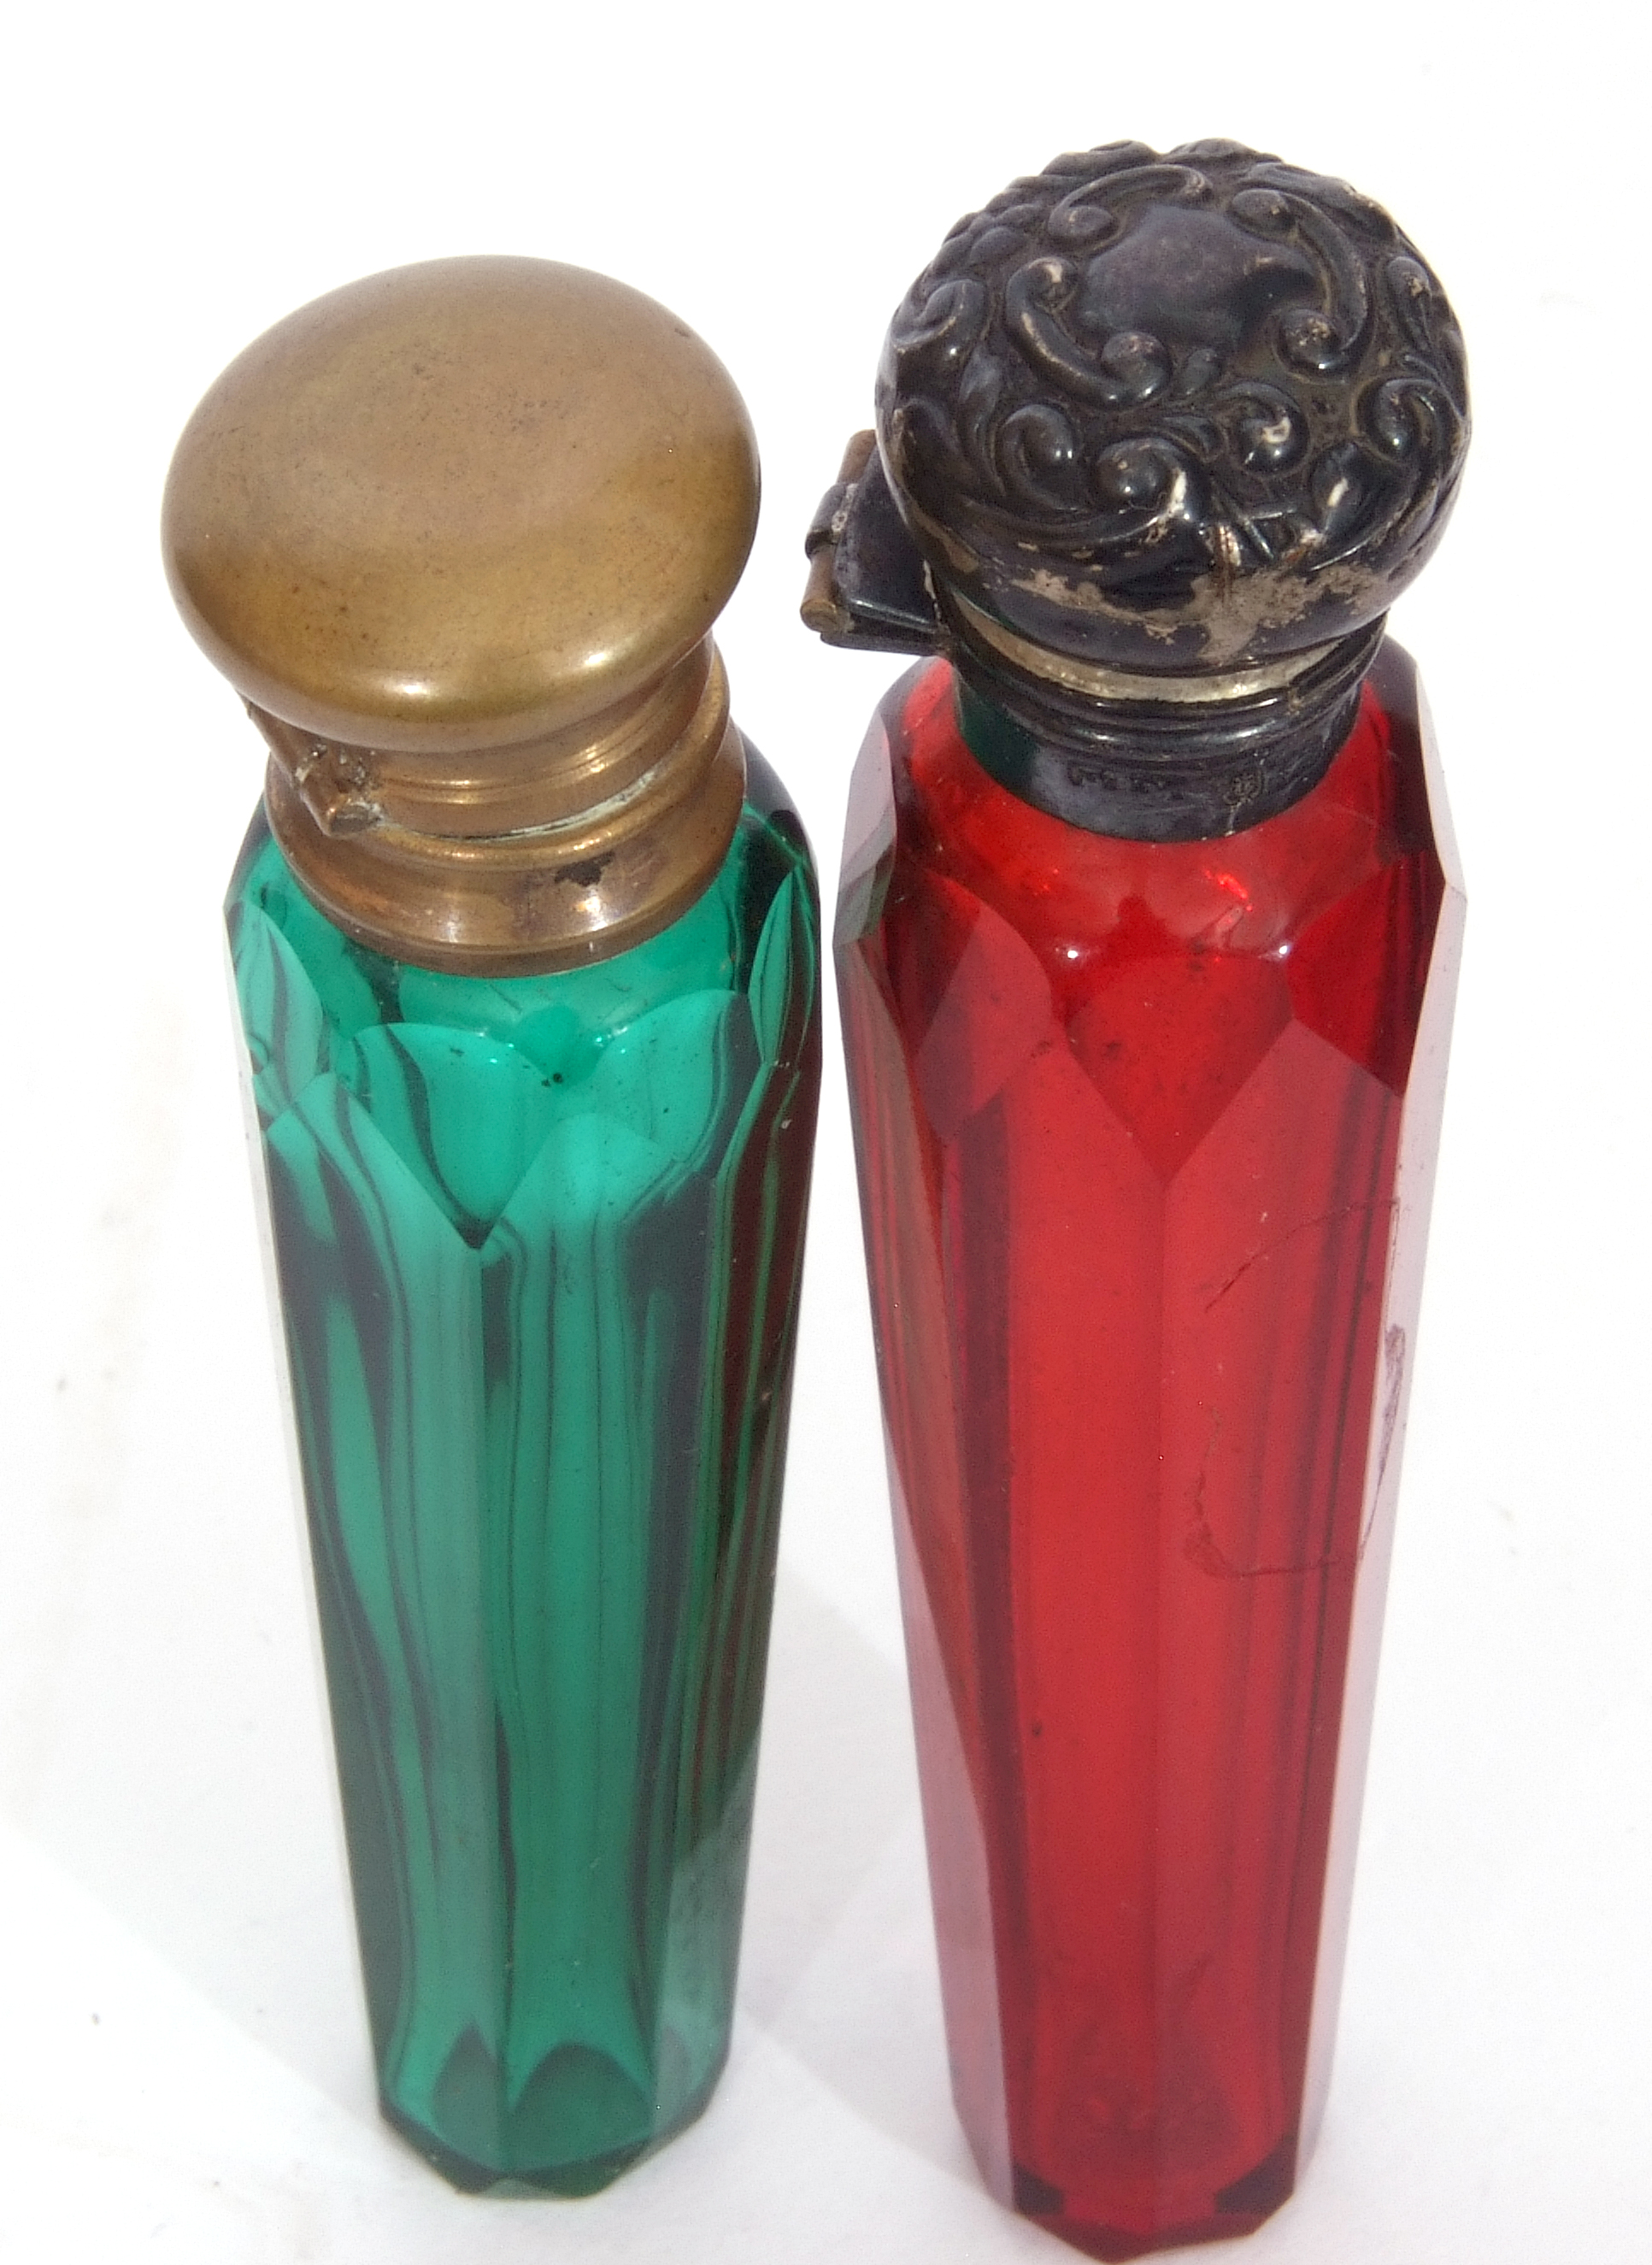 Mixed Lot: antique blue faceted glass double ended scent bottle with gilt metal fittings, 13cm long, - Image 5 of 16